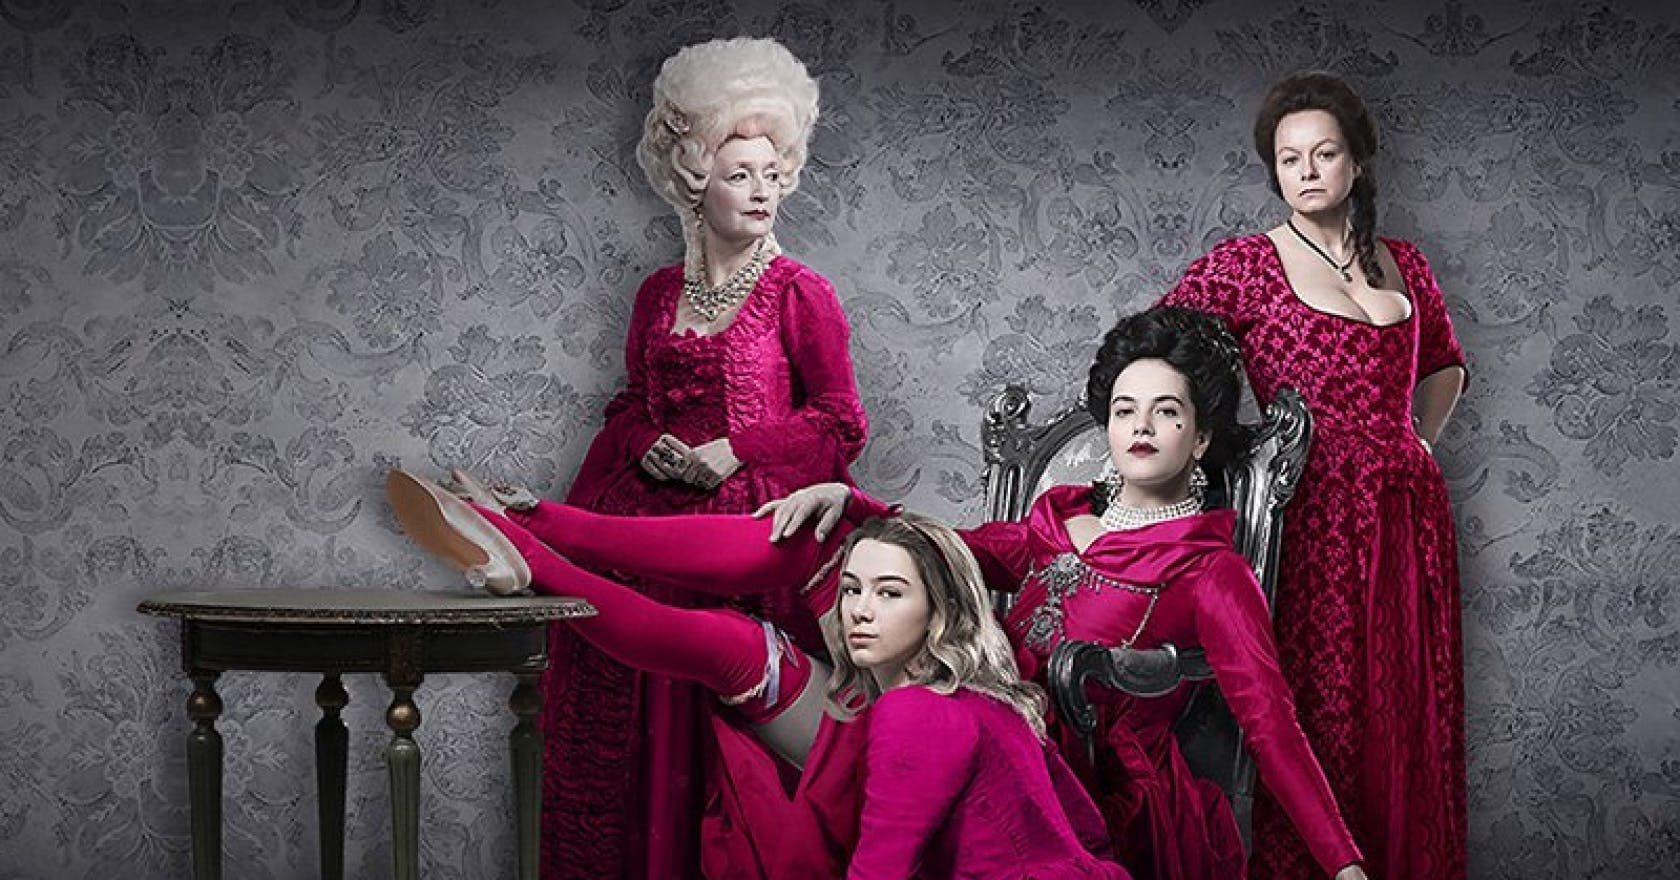 Missed Harlots the first time round? It's coming to the BBC this year